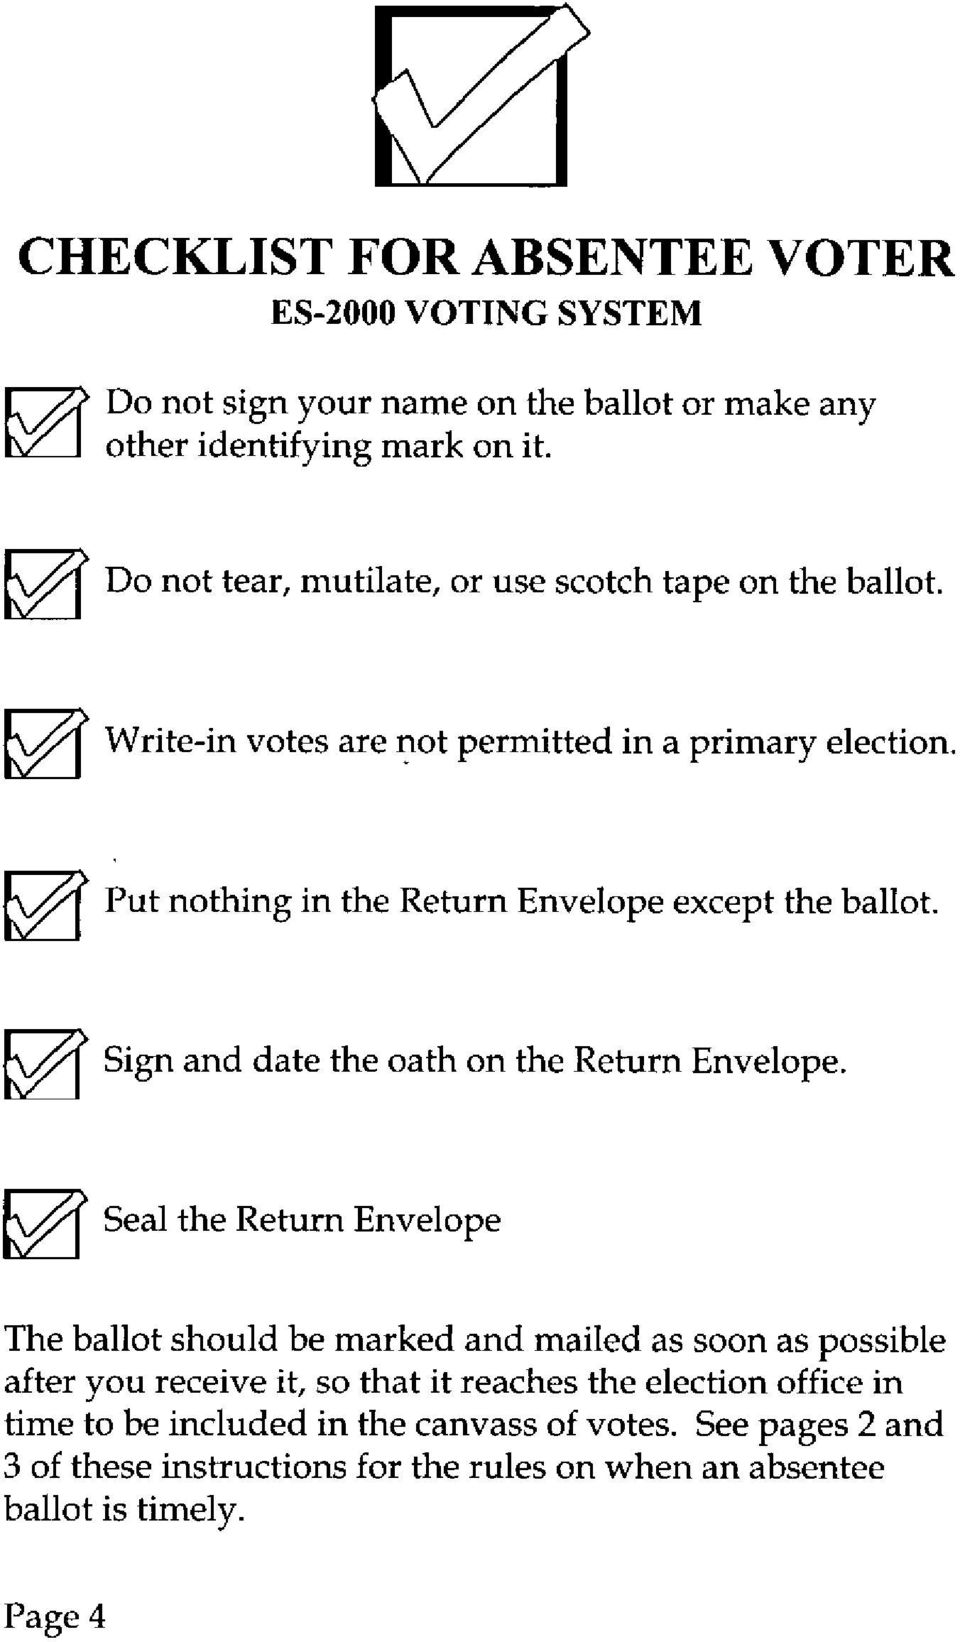 o Put nothing in the Return Envelope except the ballot. o Sign and date the oath on the Return Envelope.